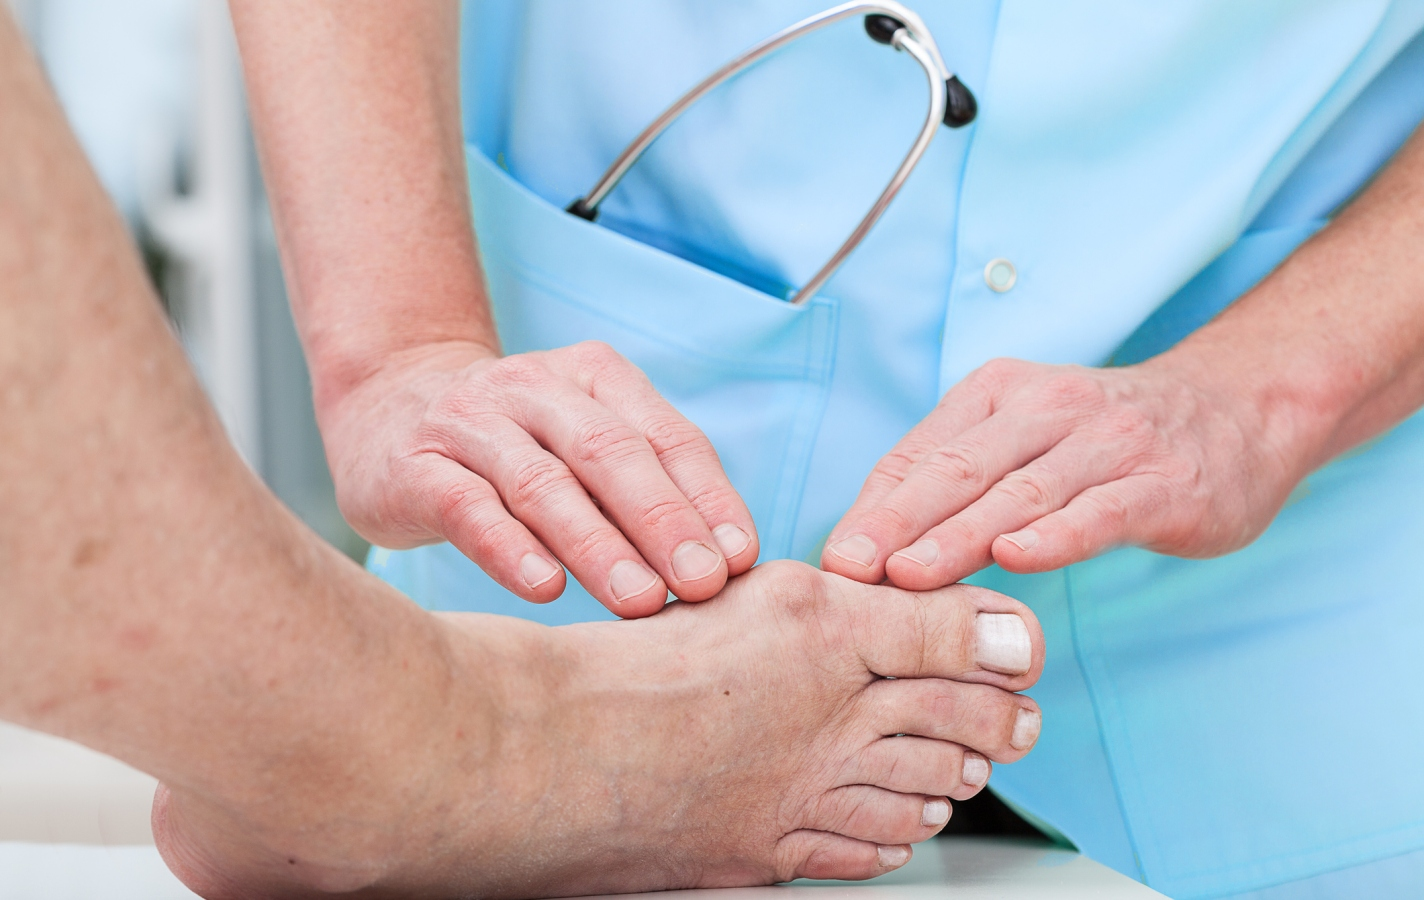 Orthopedist at work checking patient's foot